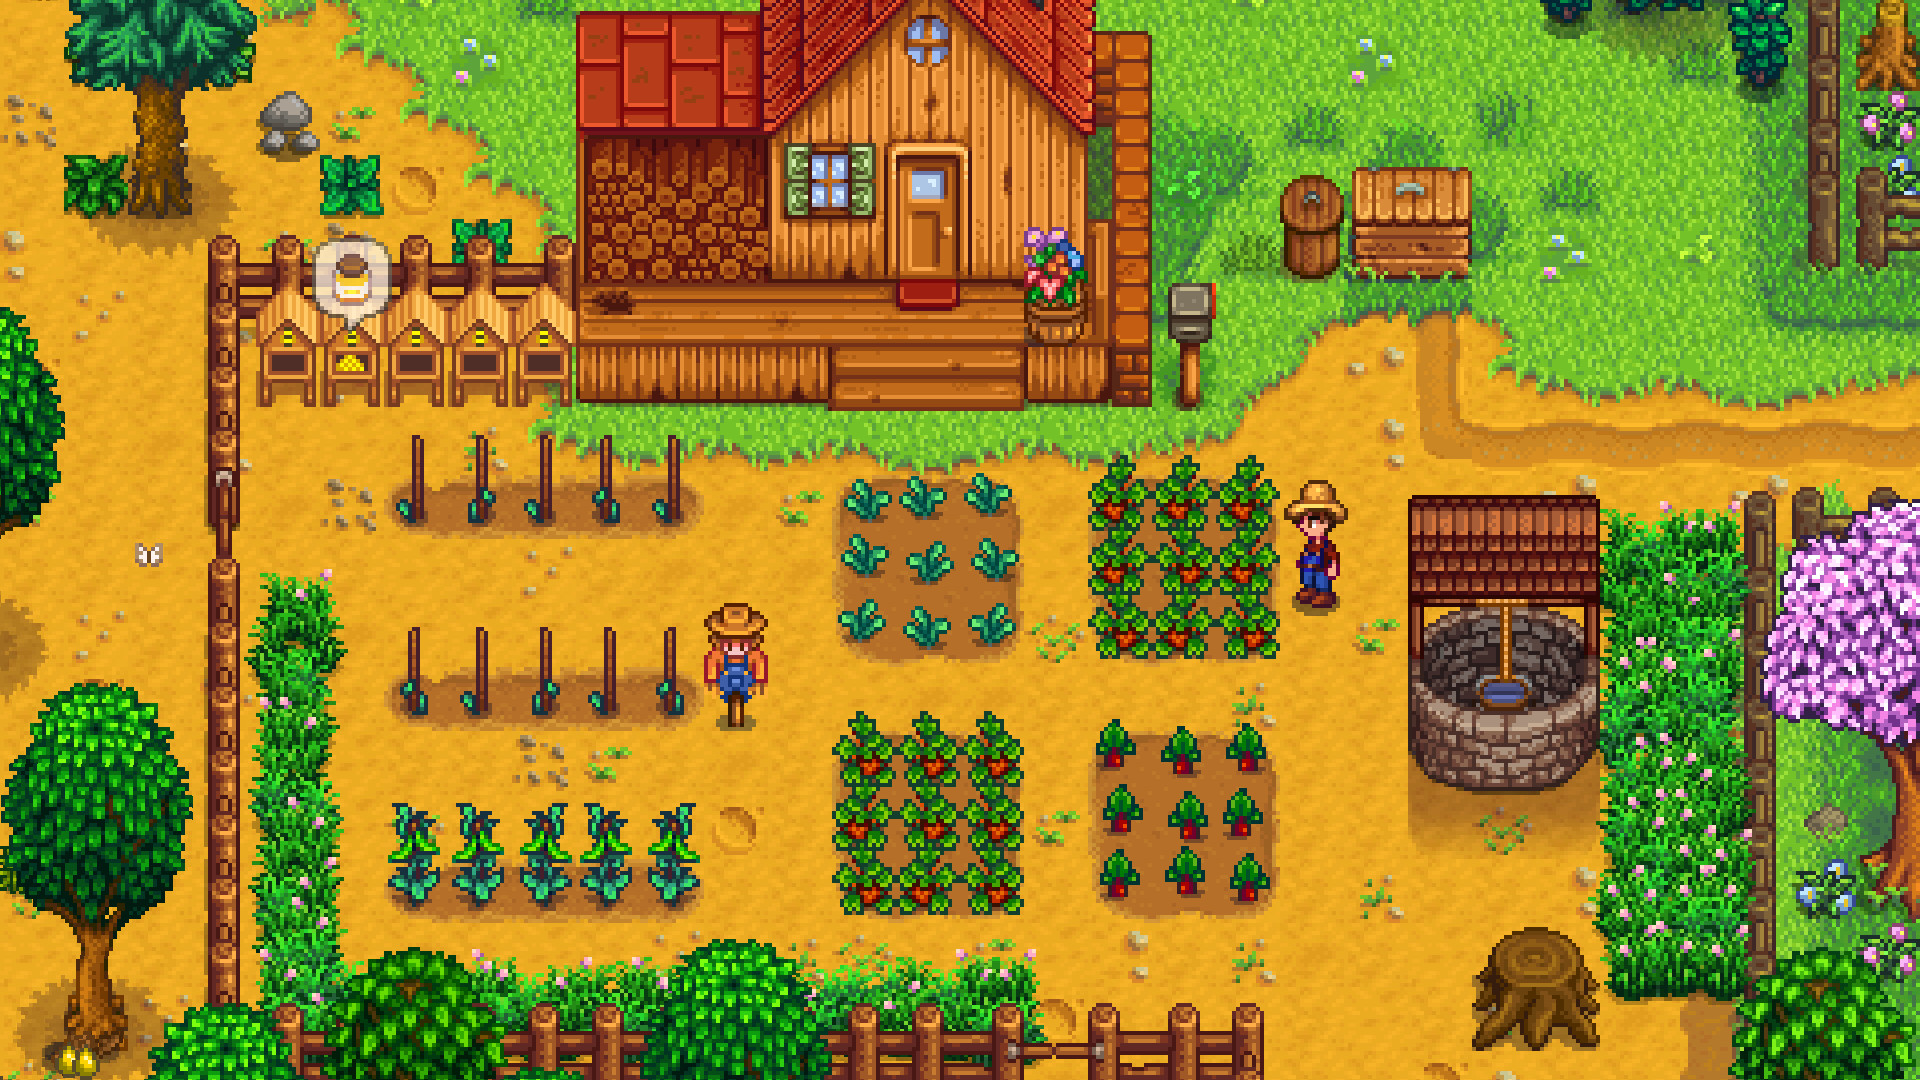 Stardew Valley is coming to mobile this month